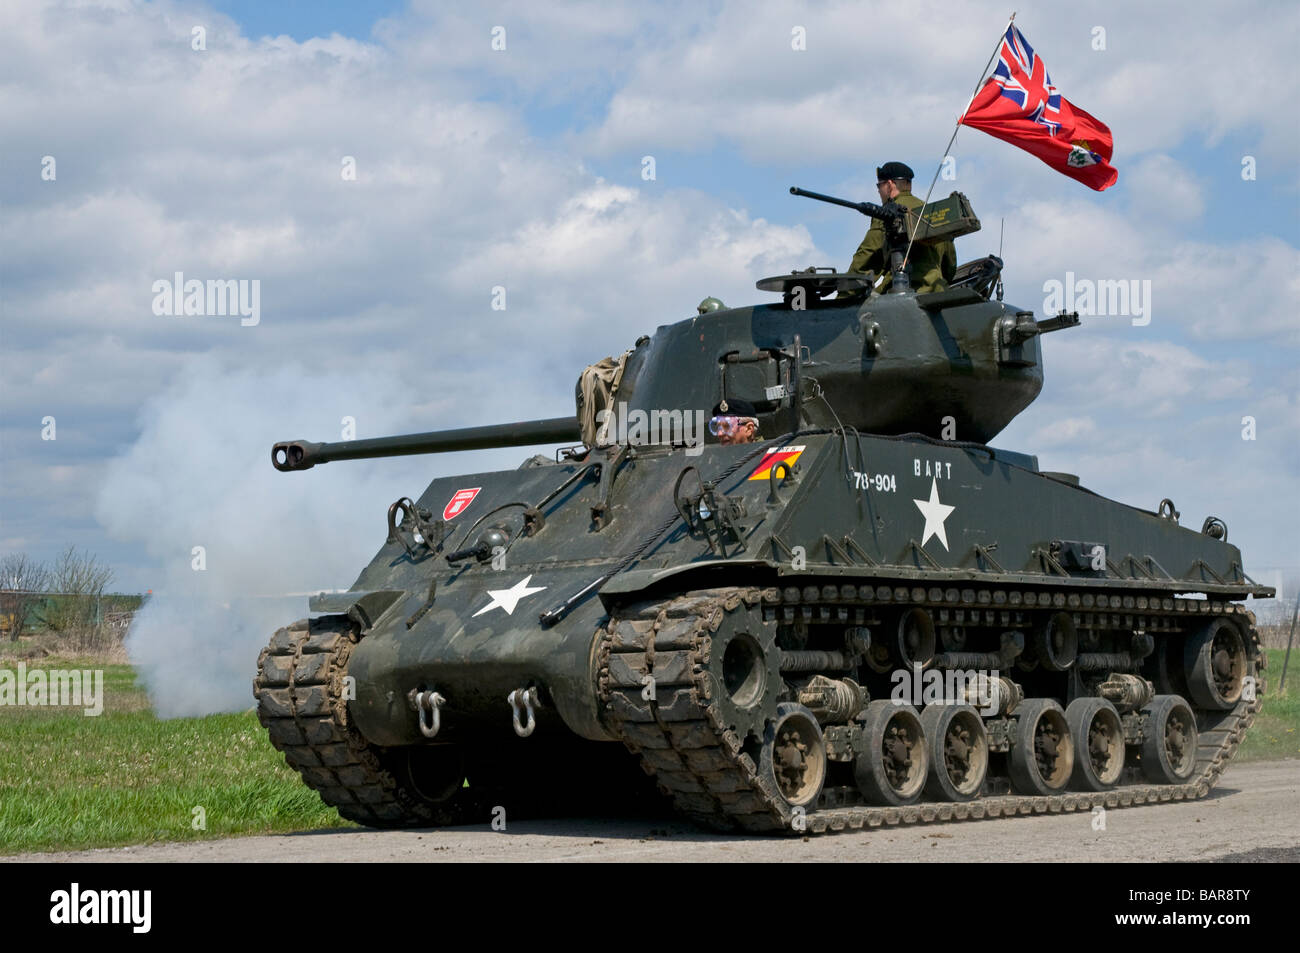 A fully restored IV Sherman tank flying the World War Two Canadian flag. Its main gun has just been fired. - Stock Image